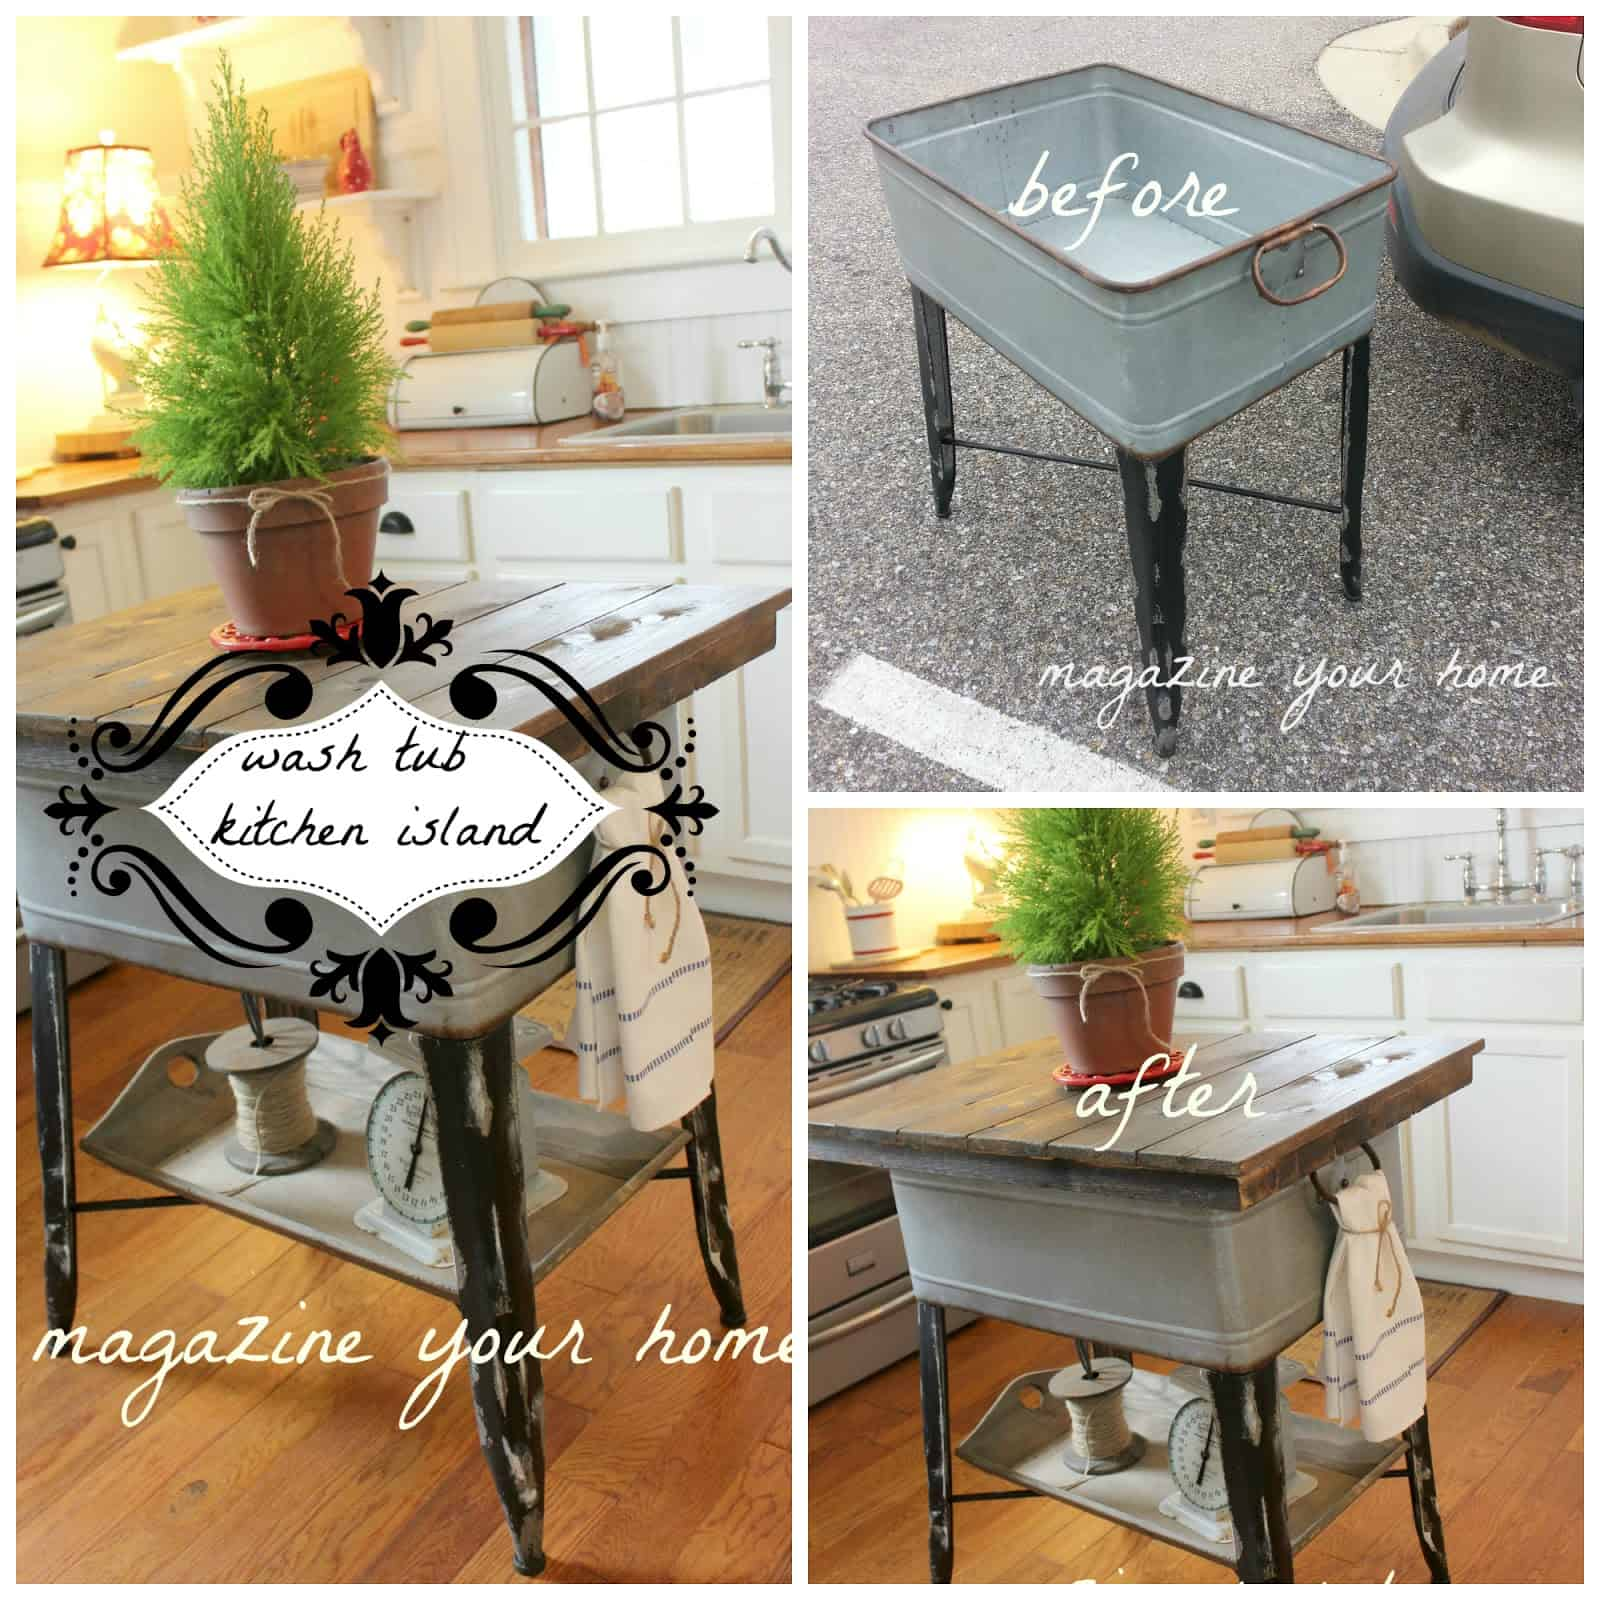 Repurposed Flea Market Finds That Make Gorgeous Upcycled